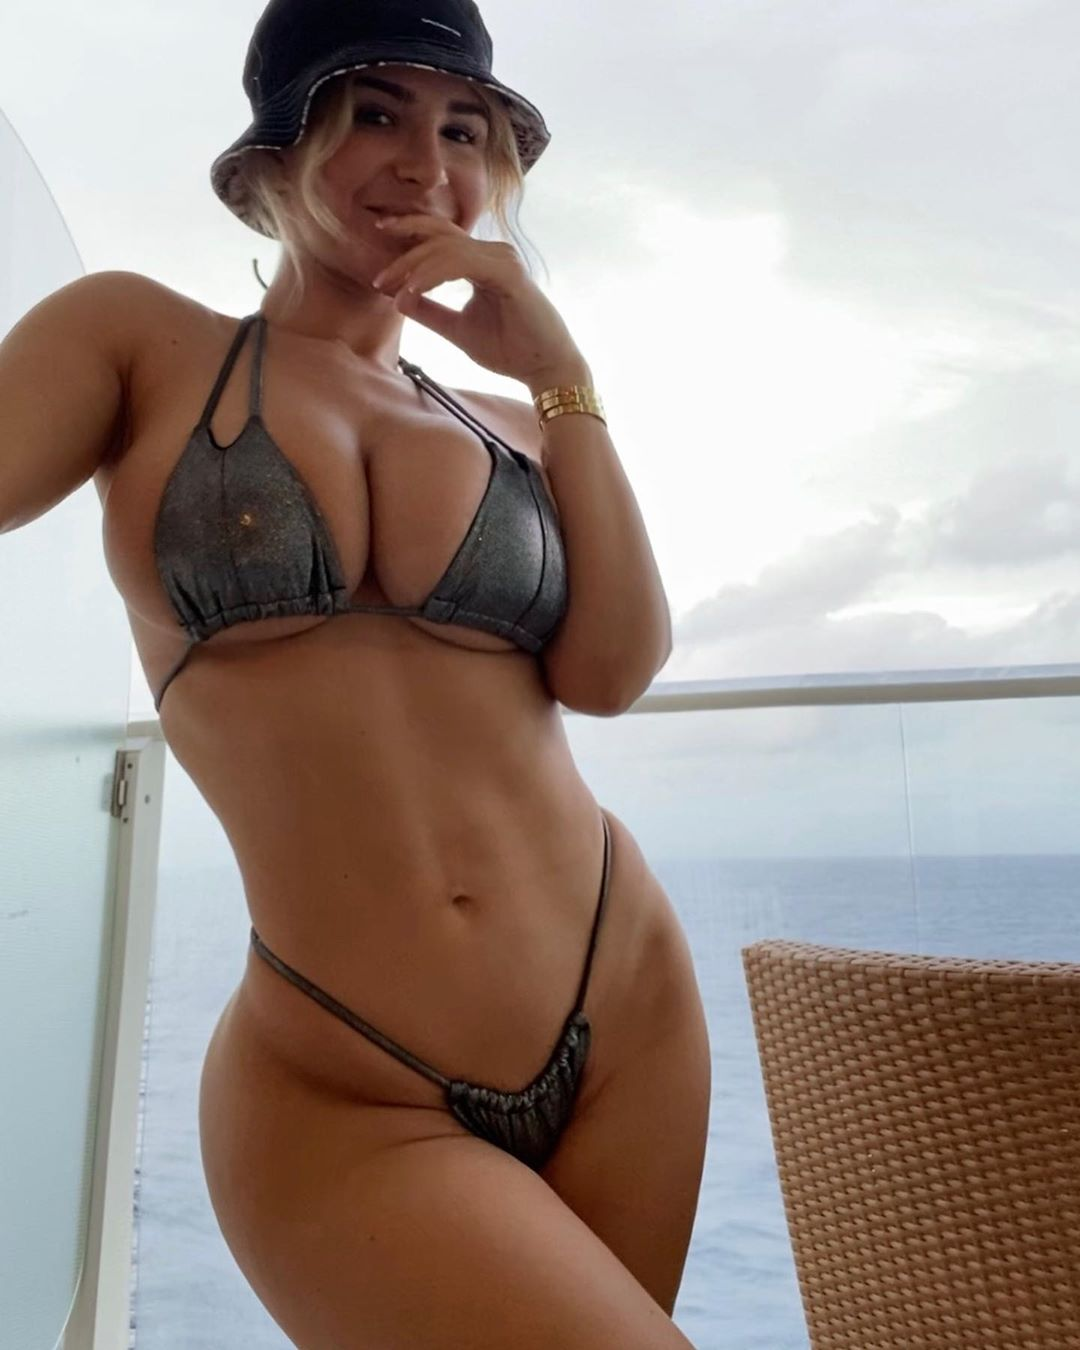 Lauren Pisciotta - Busty Slim-Thick Leaked Nudes - Page 2